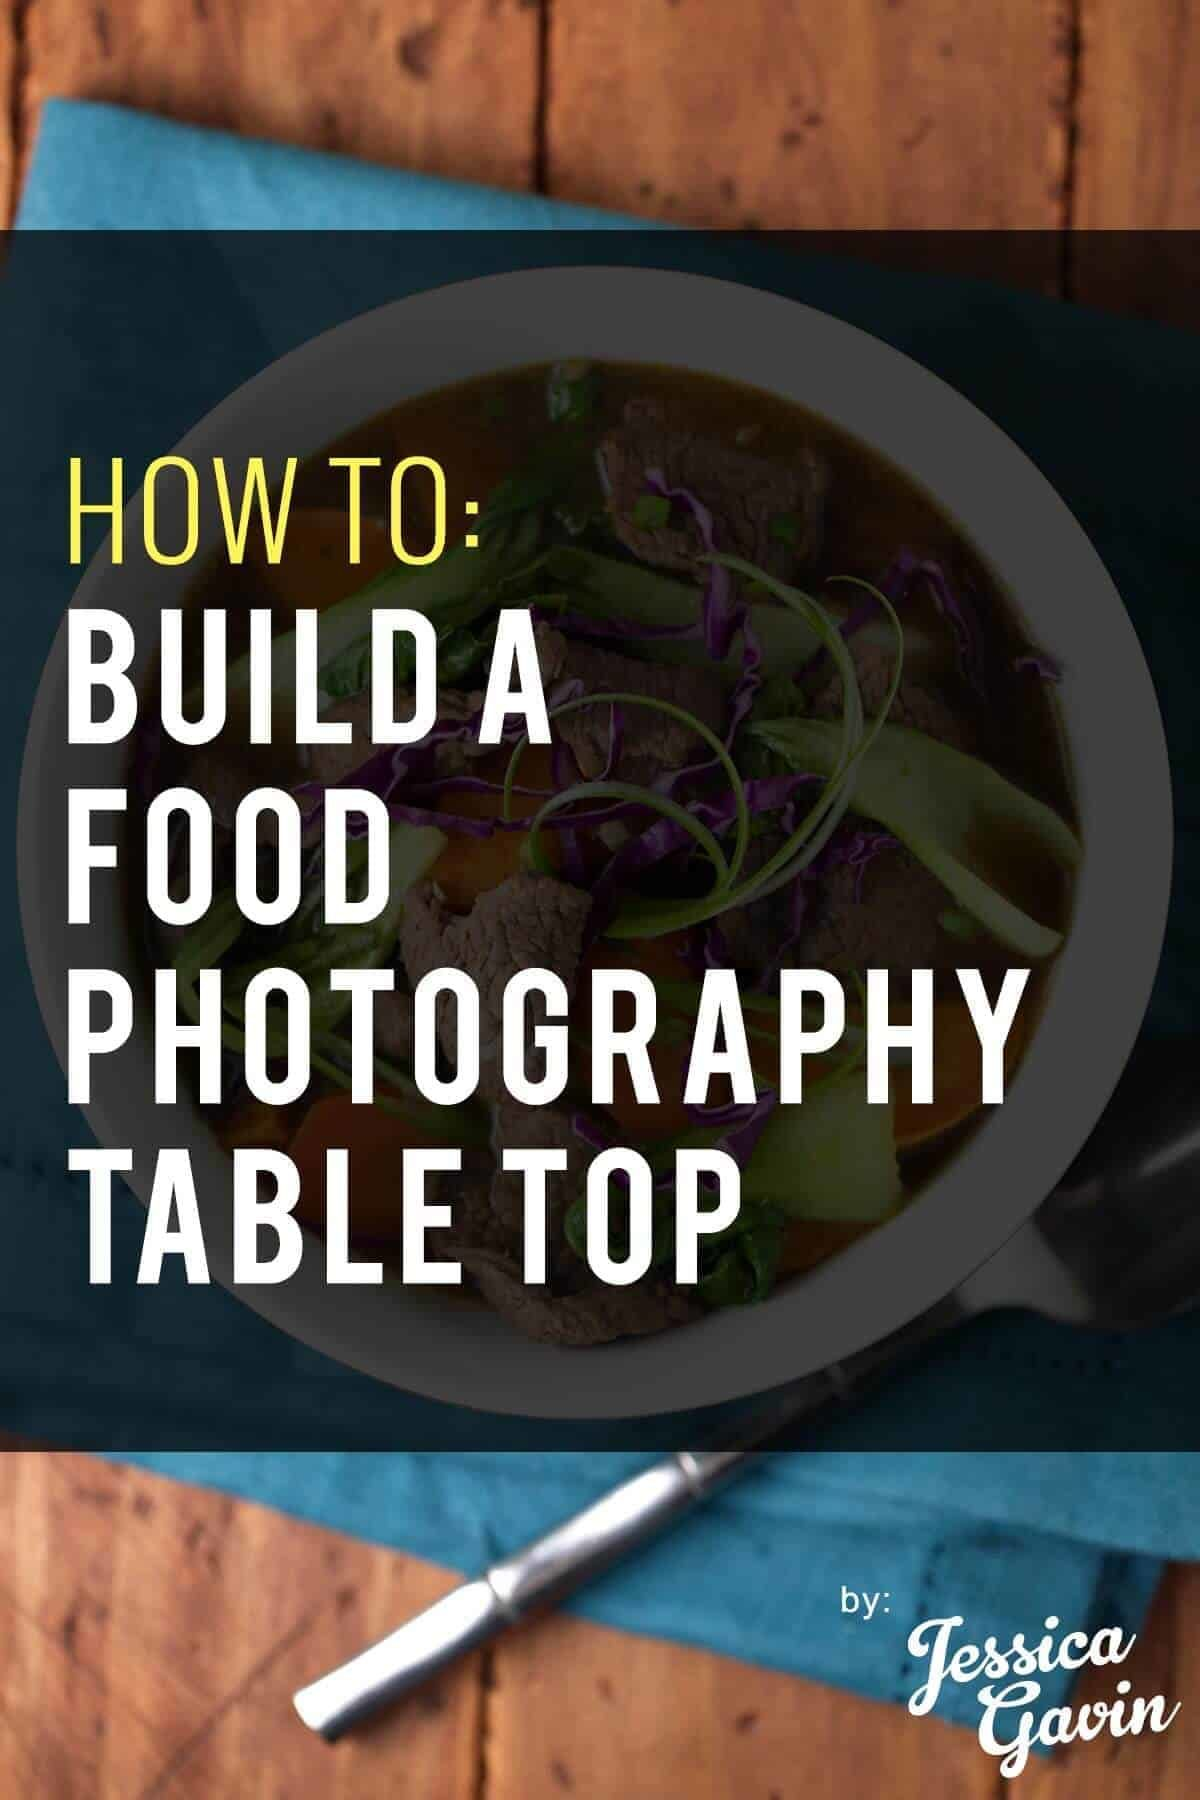 DIY Project - How to build a food photography table top | jessicagavin.com #foodblog